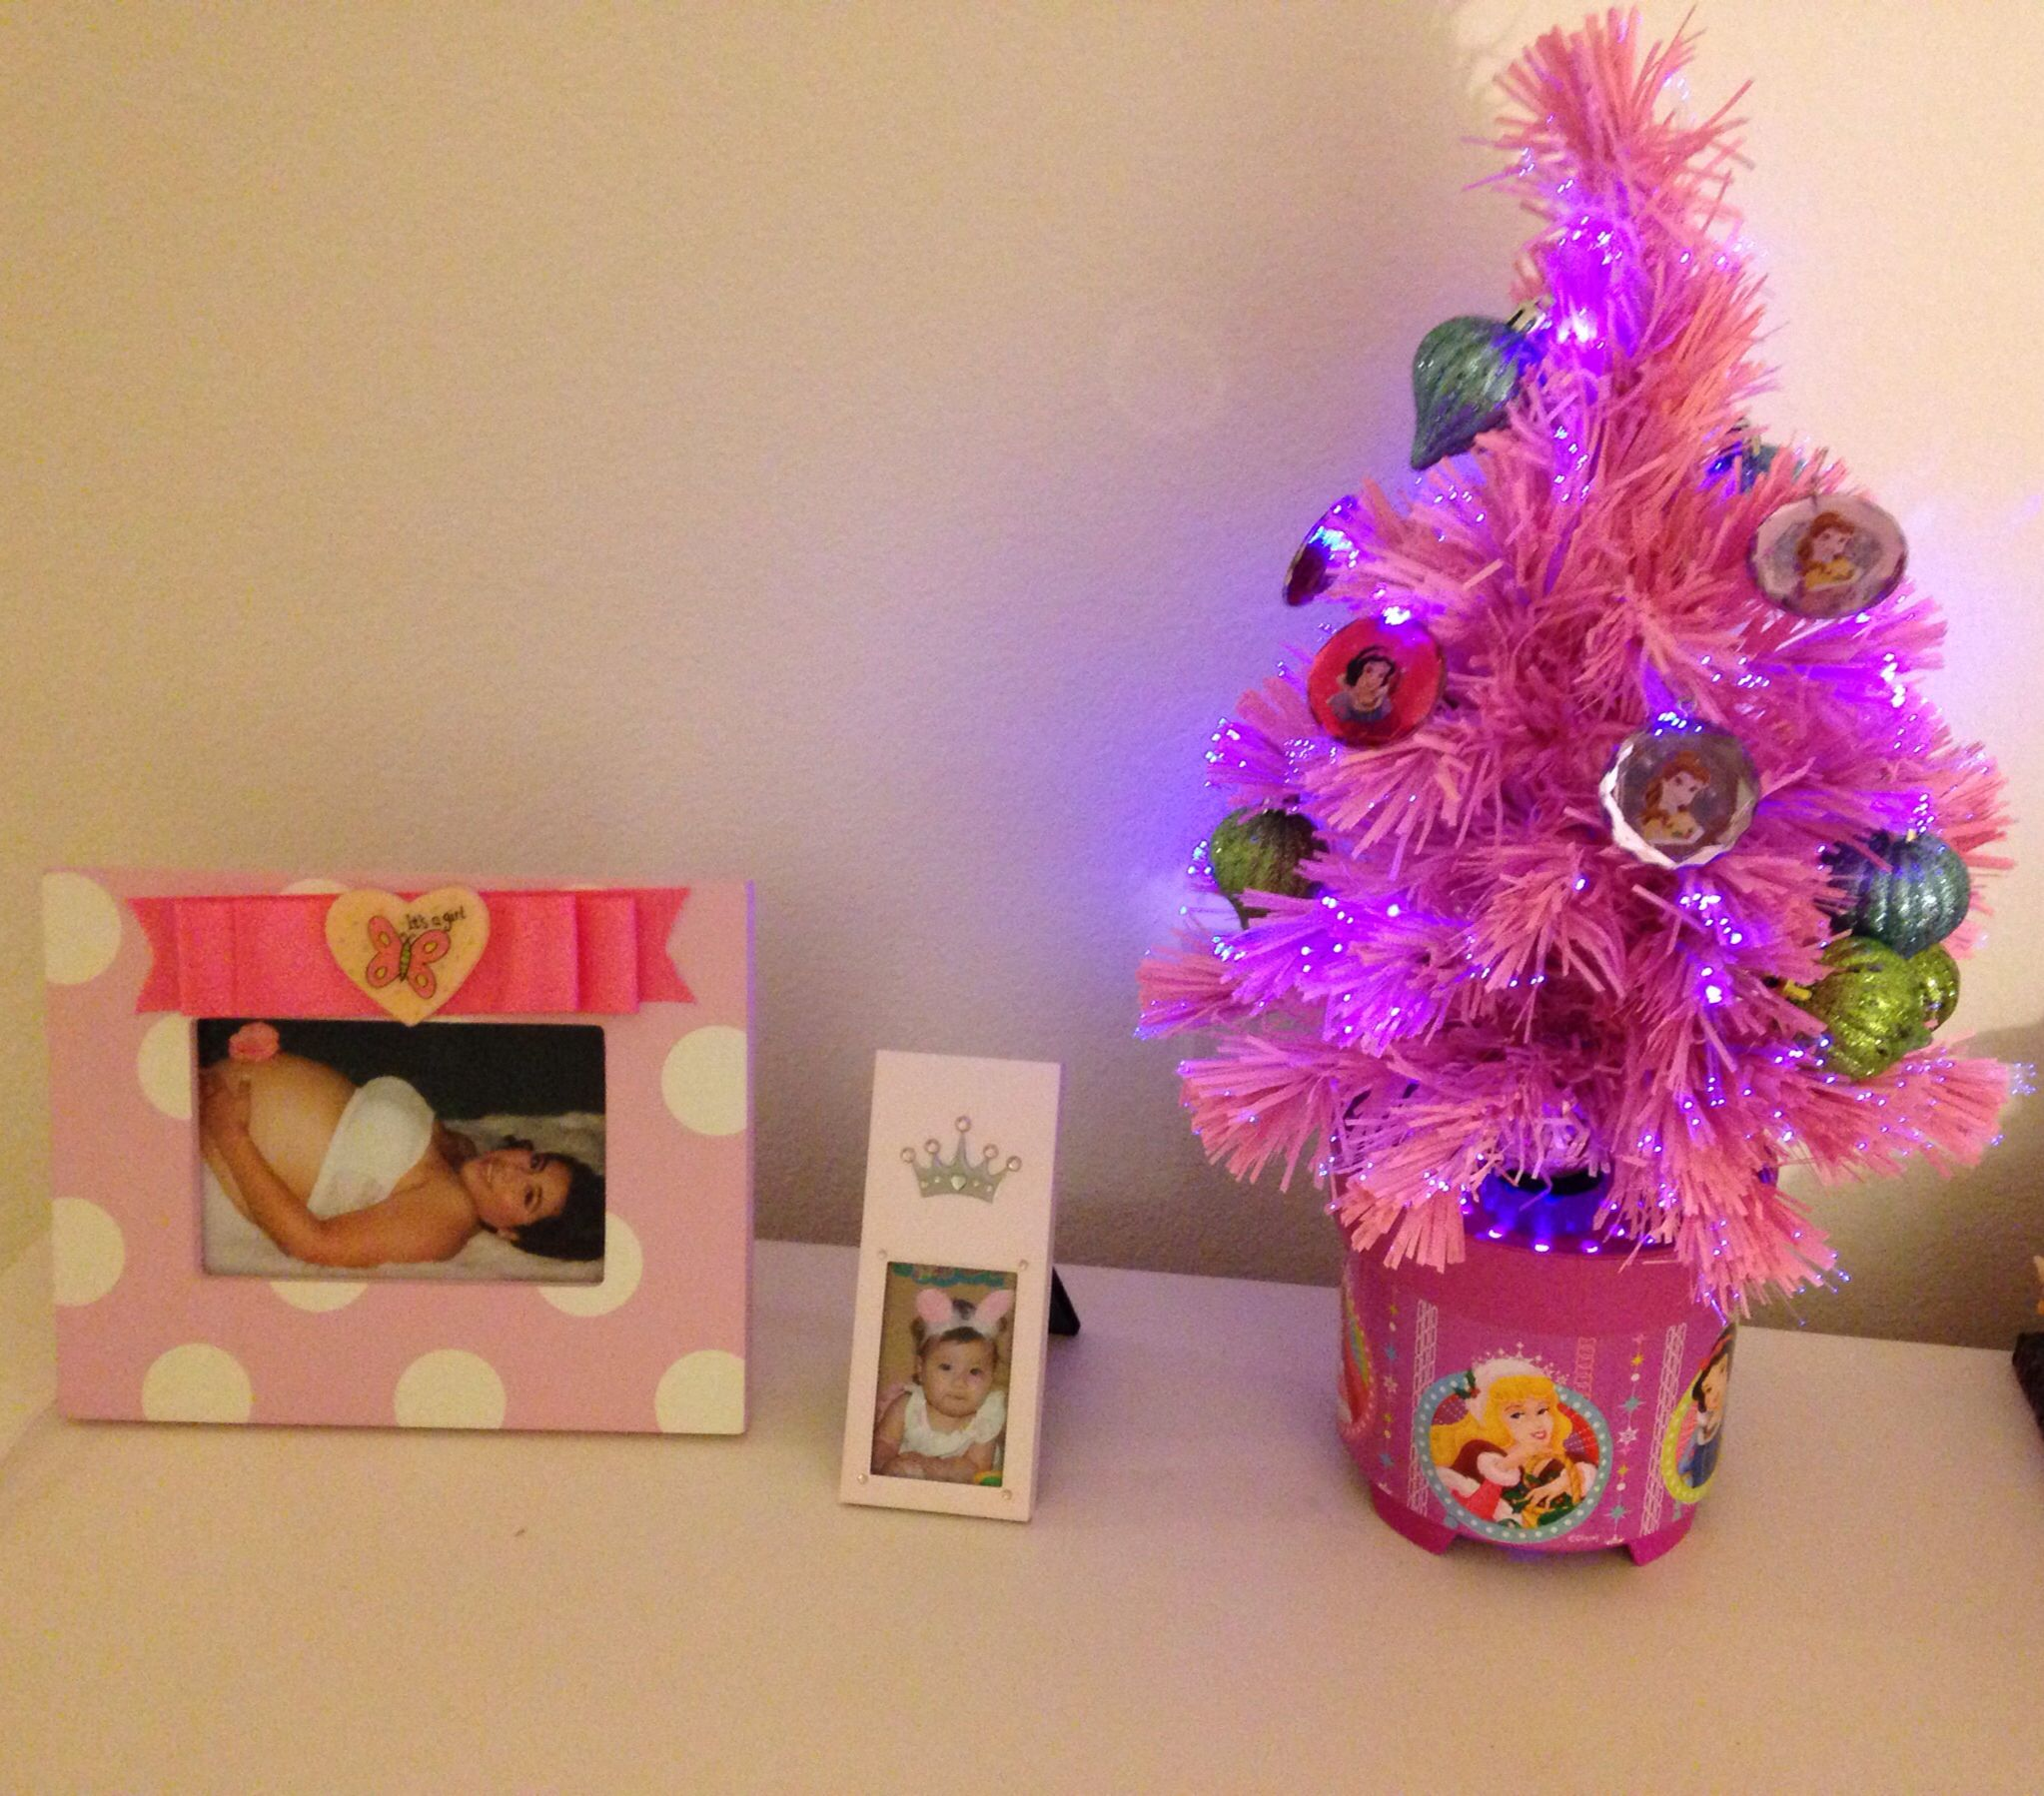 Daughters Disney Princess Christmas Tree! It's a beautiful PINK Christmas  tree that changes color and has ornaments with Disney Princesses!